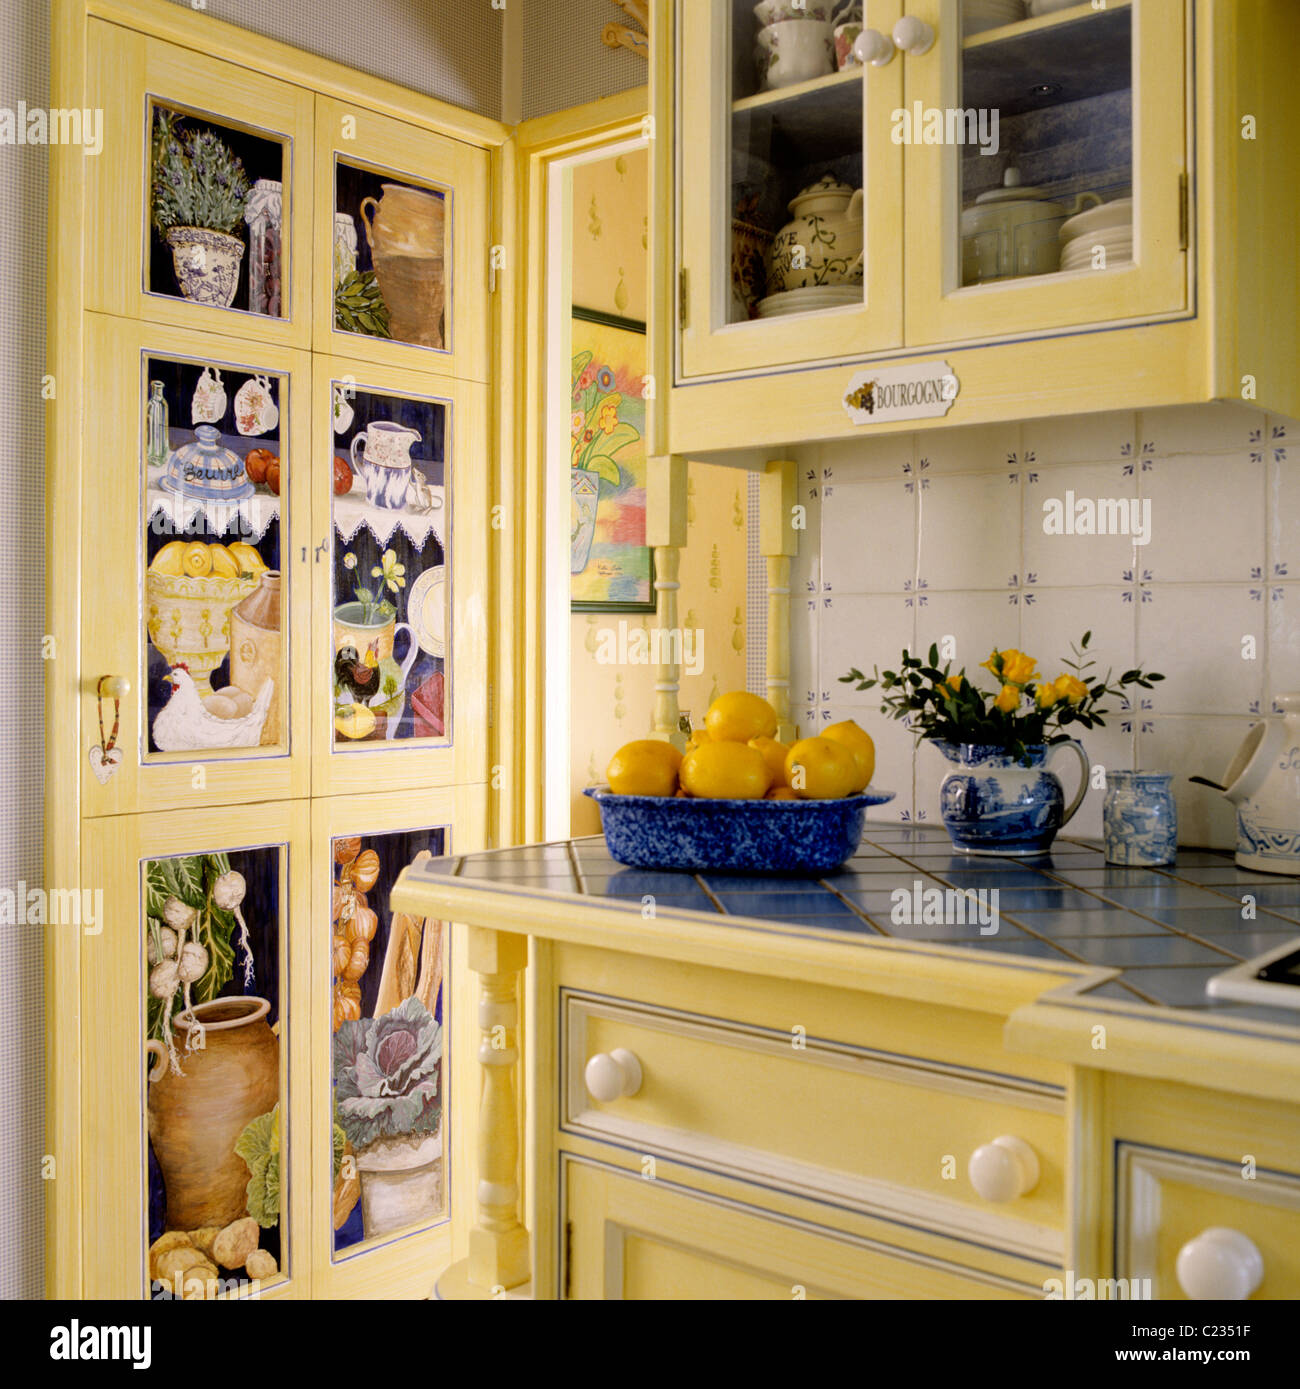 Lemons In A Traditional English Style Kitchen With Yellow Painted Cupboards  And Drawers